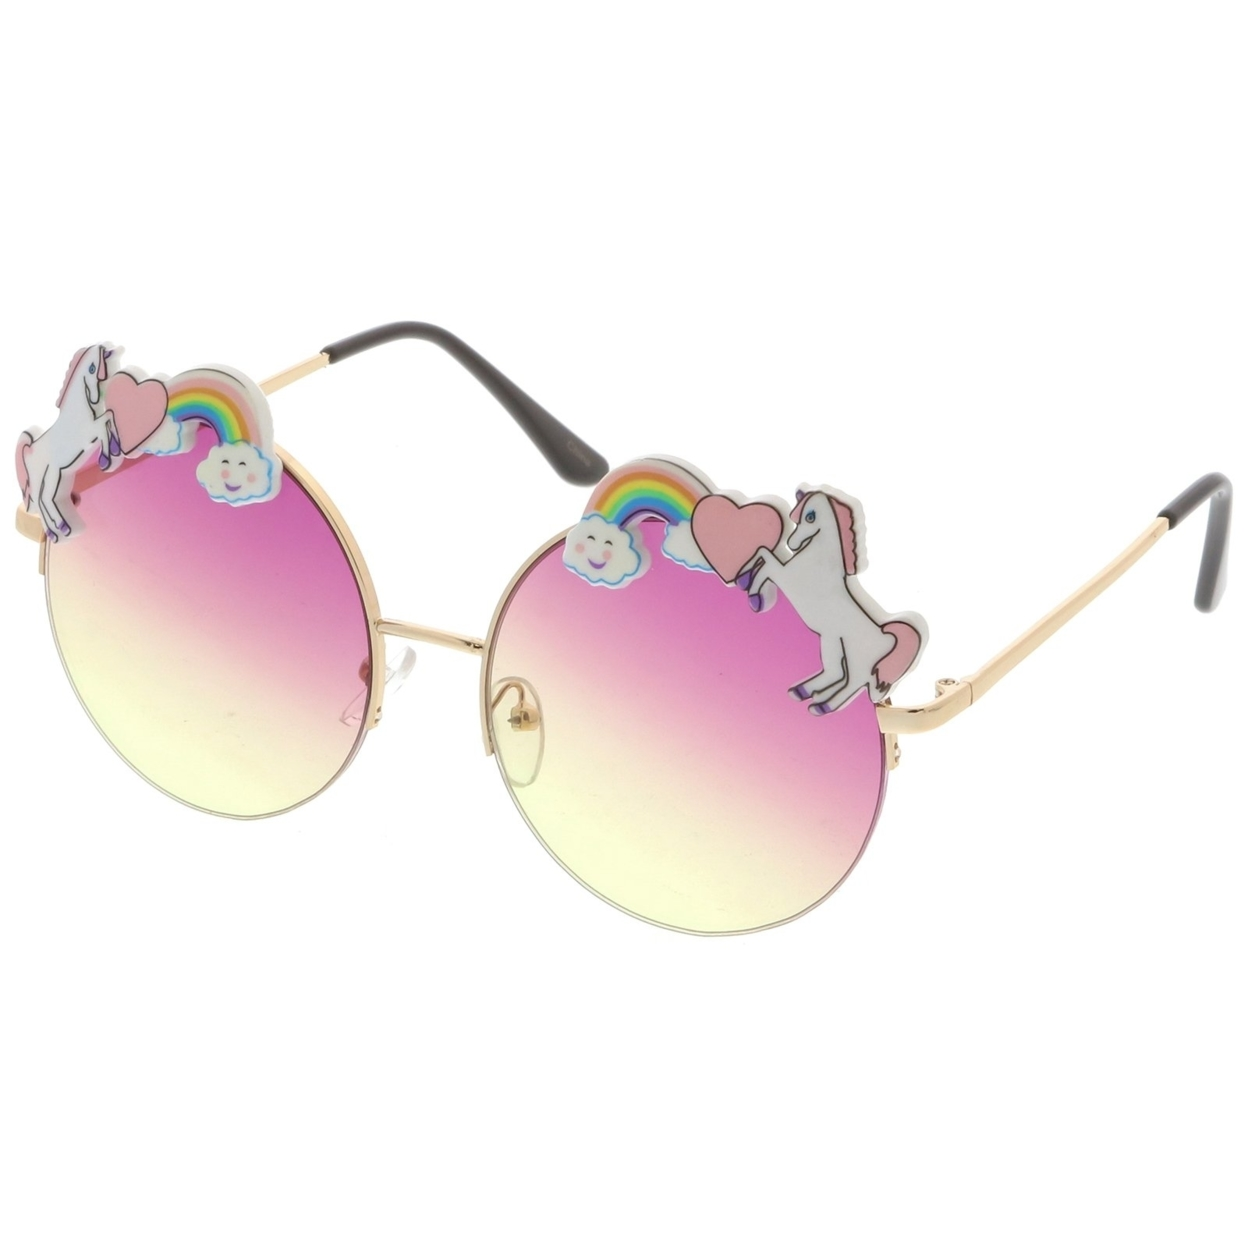 Unicorn Rainbow Semi Rimless Round Sunglasses With Gradient Colored Lens 56mm (2)